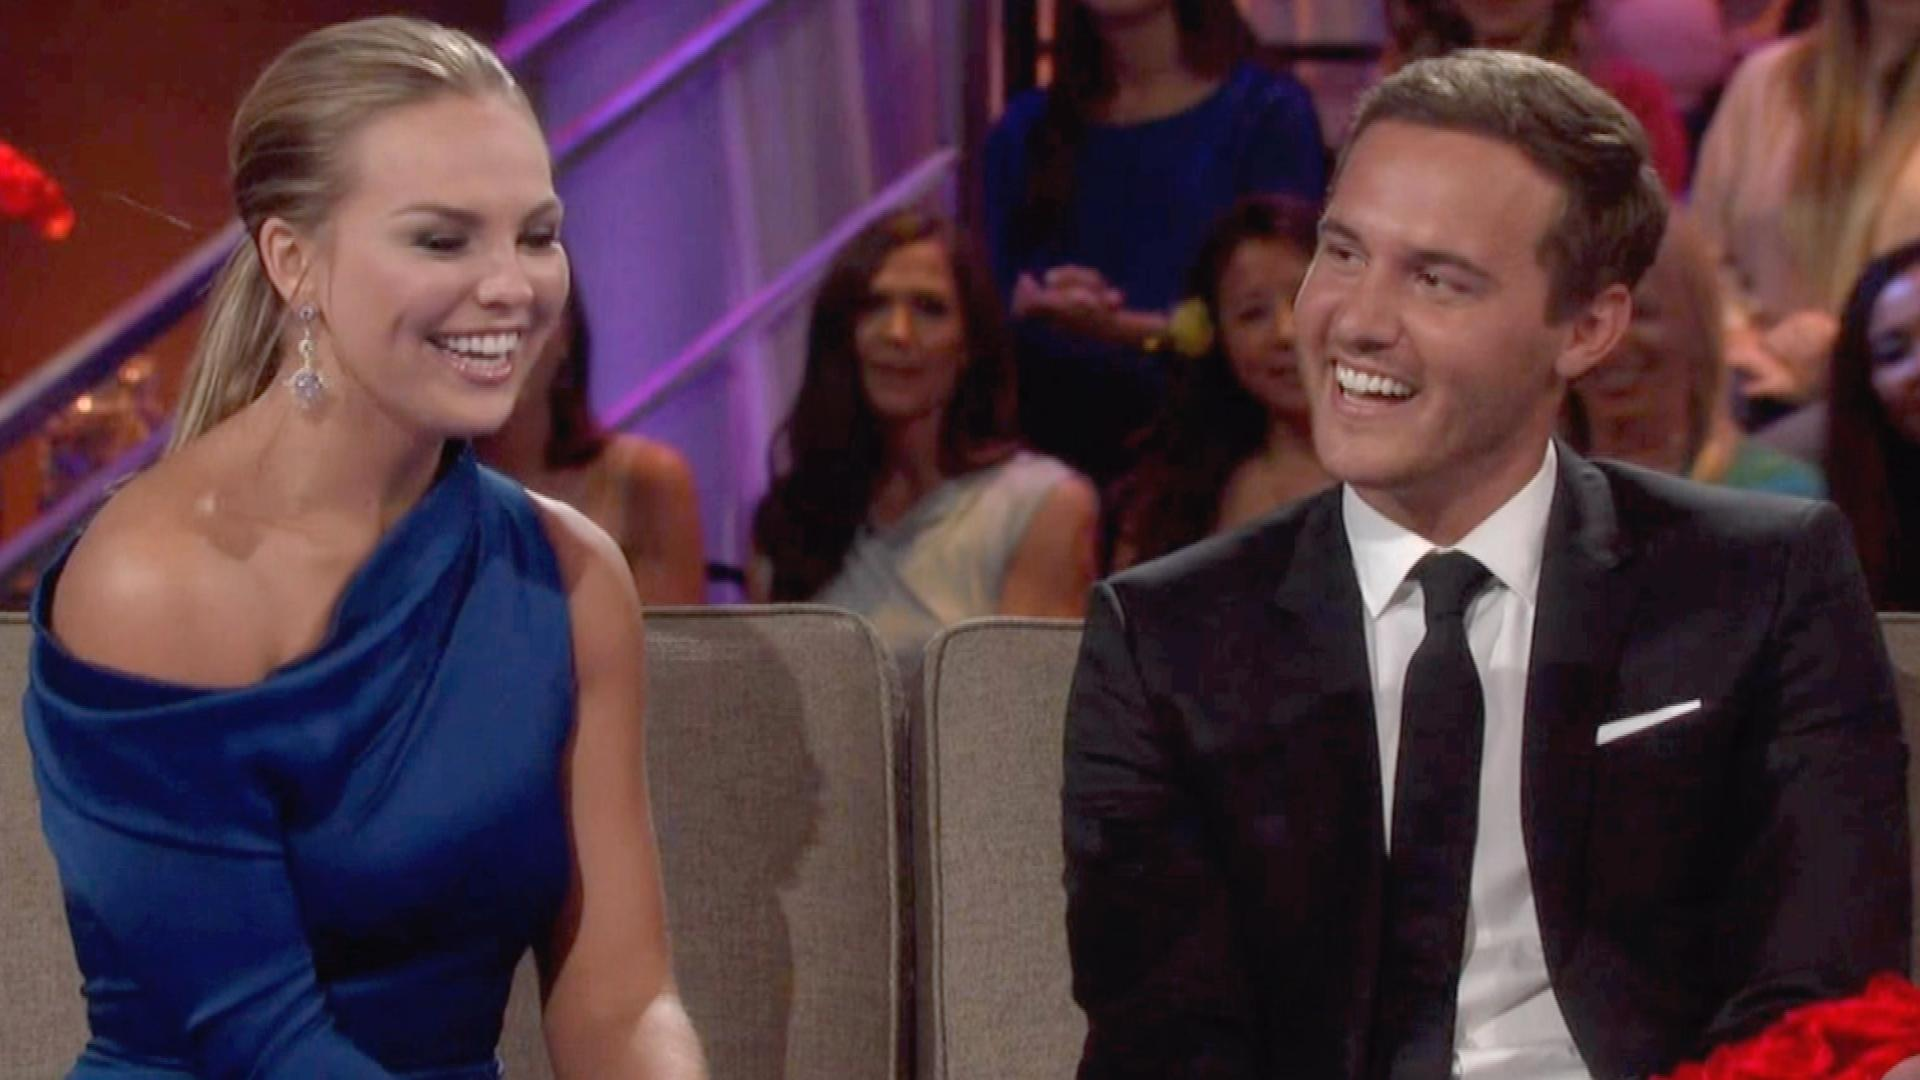 The Bachelorette': Why Peter Weber's Ex-Girlfriend Drama